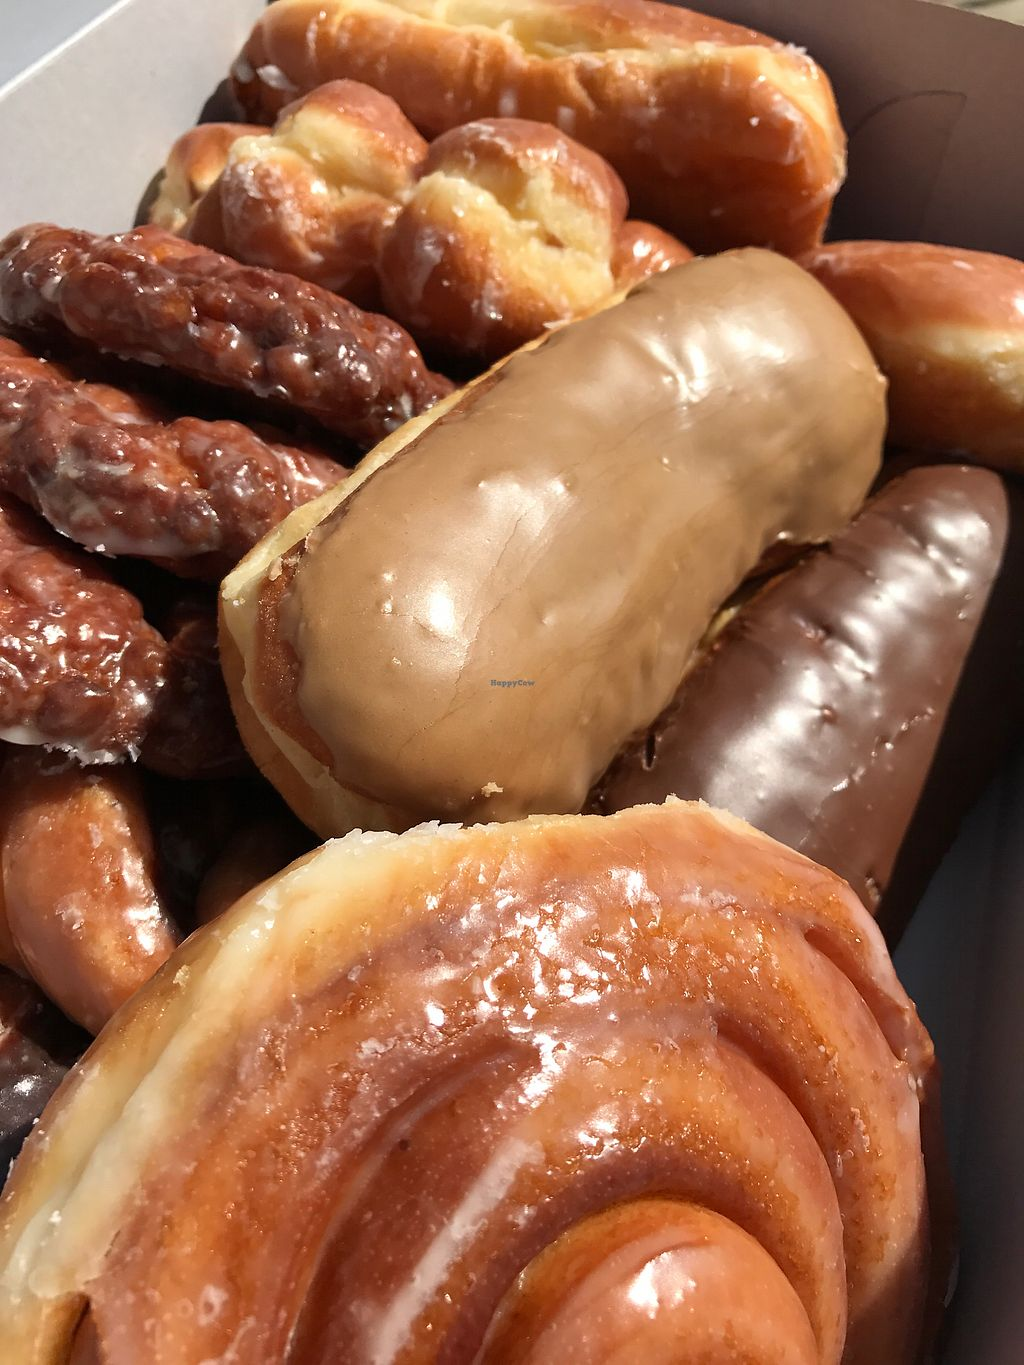 """Photo of Donut Xpress  by <a href=""""/members/profile/SoWo1999"""">SoWo1999</a> <br/>vegan donuts! <br/> August 19, 2017  - <a href='/contact/abuse/image/85755/294430'>Report</a>"""